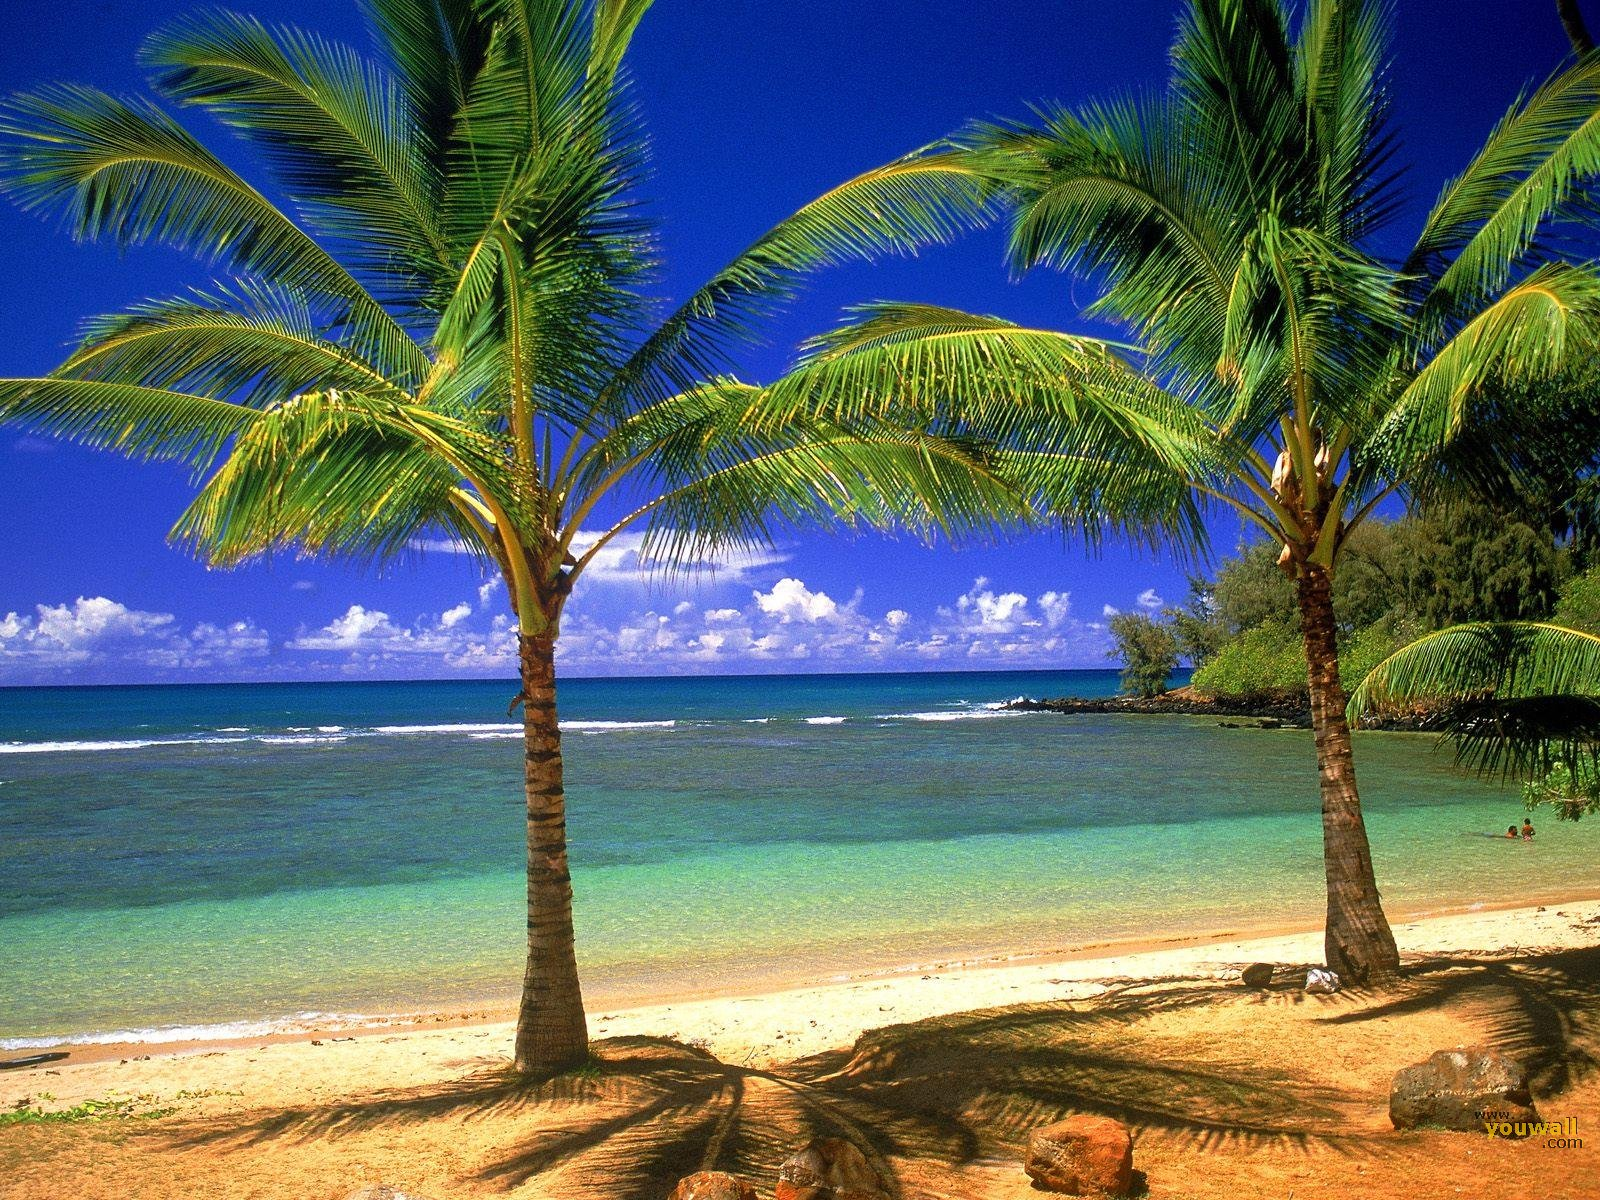 Tropical Beach Desktop Wallpaper Sf Pictures Wallpapers Group 89 Free